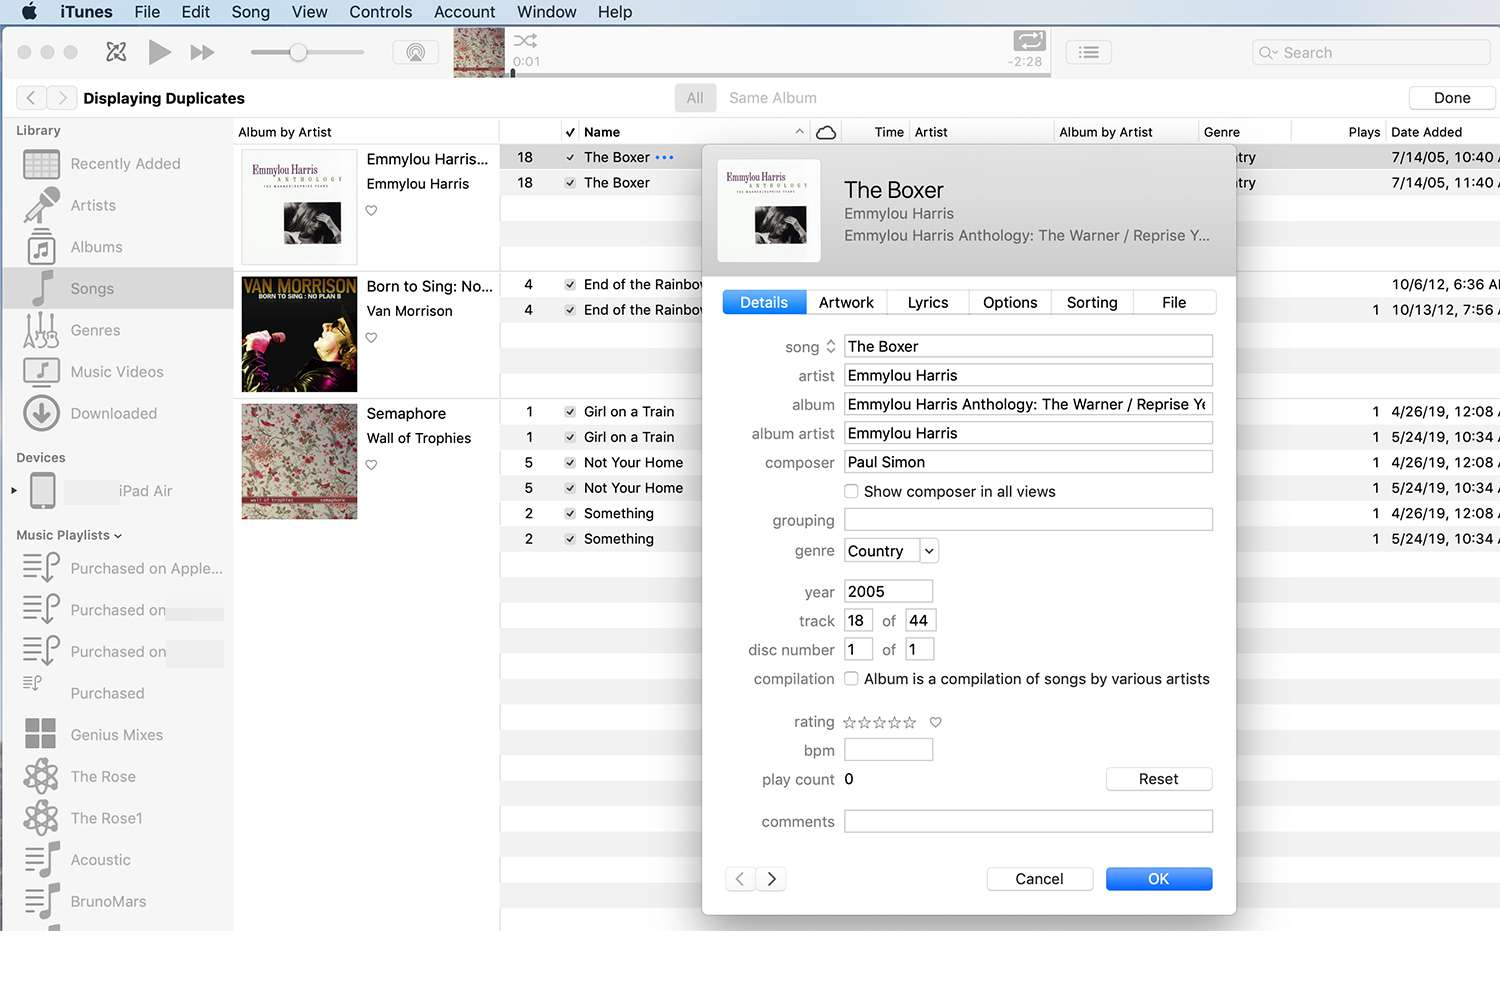 Delete Duplicate Songs in iTunes for iPhone & iPod